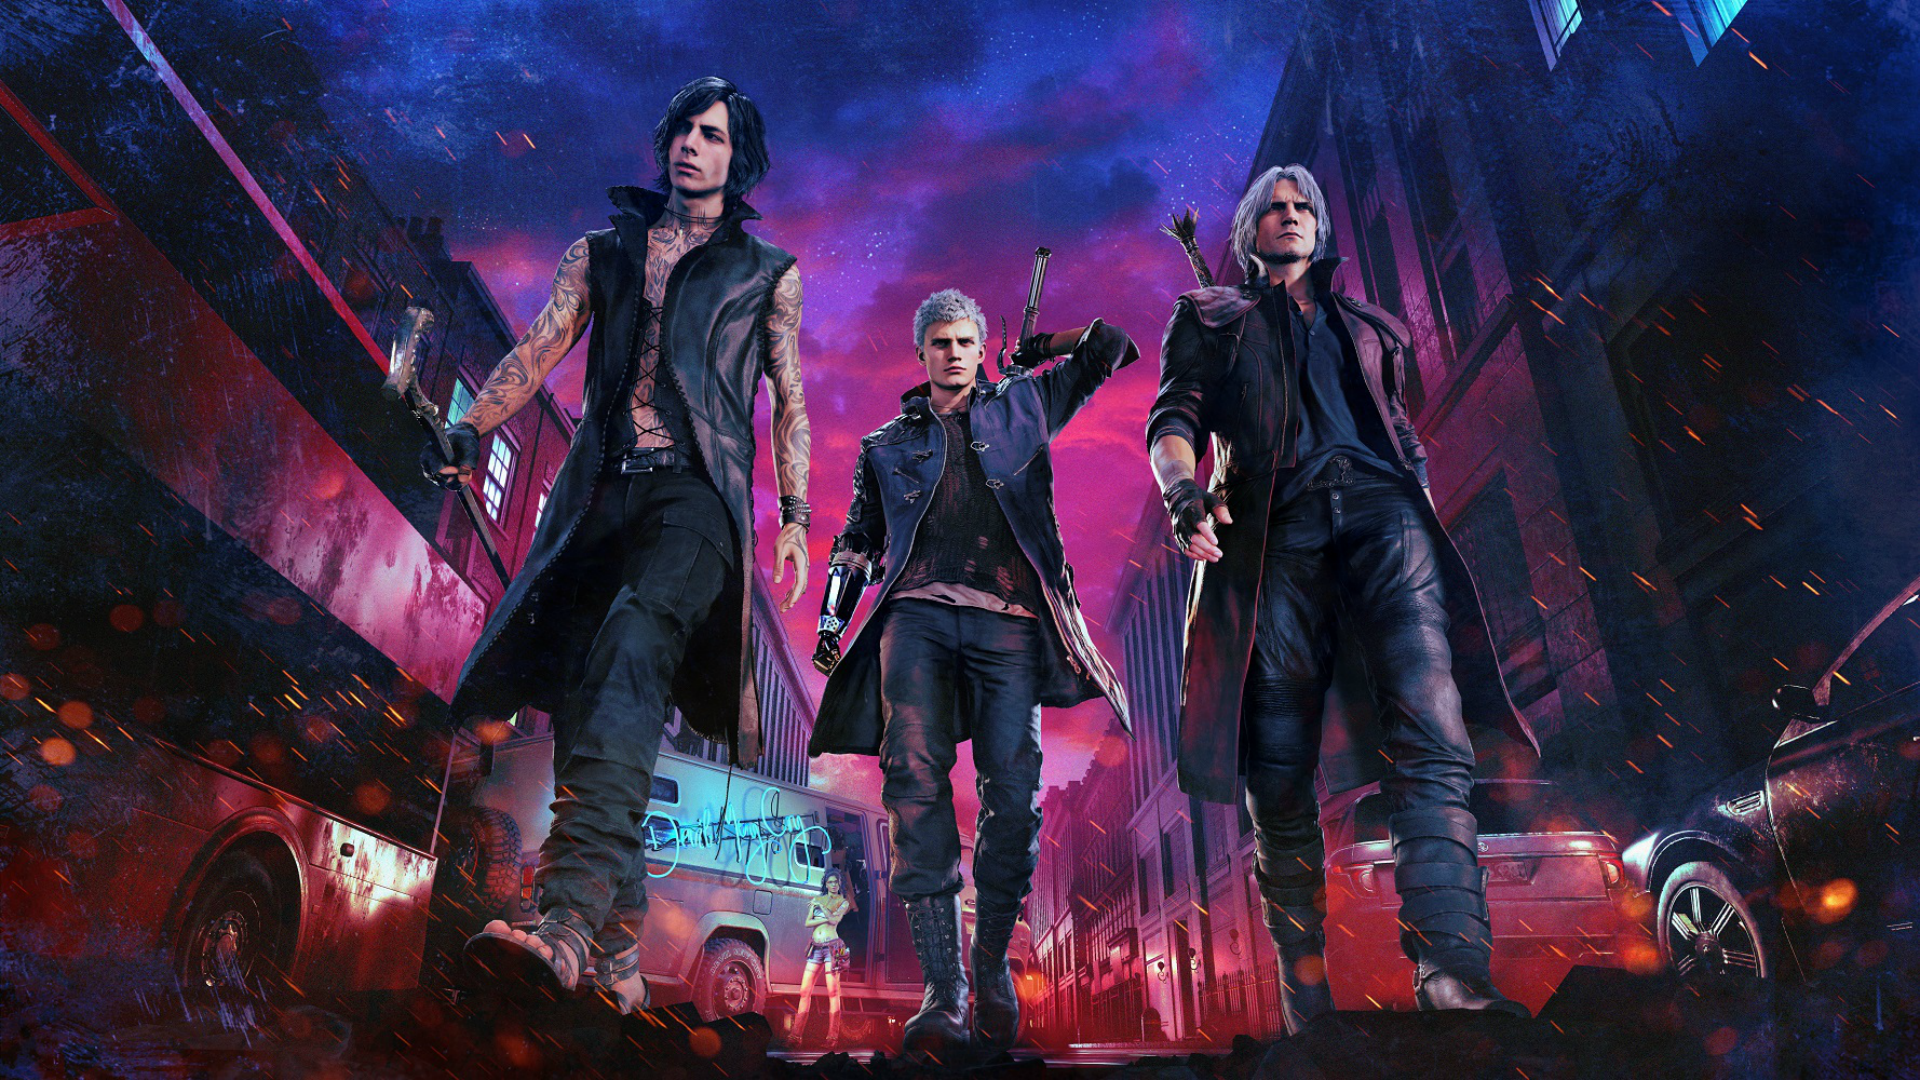 Devil May Cry 5 Deluxe Edition Key Art Hd Wallpaper Background